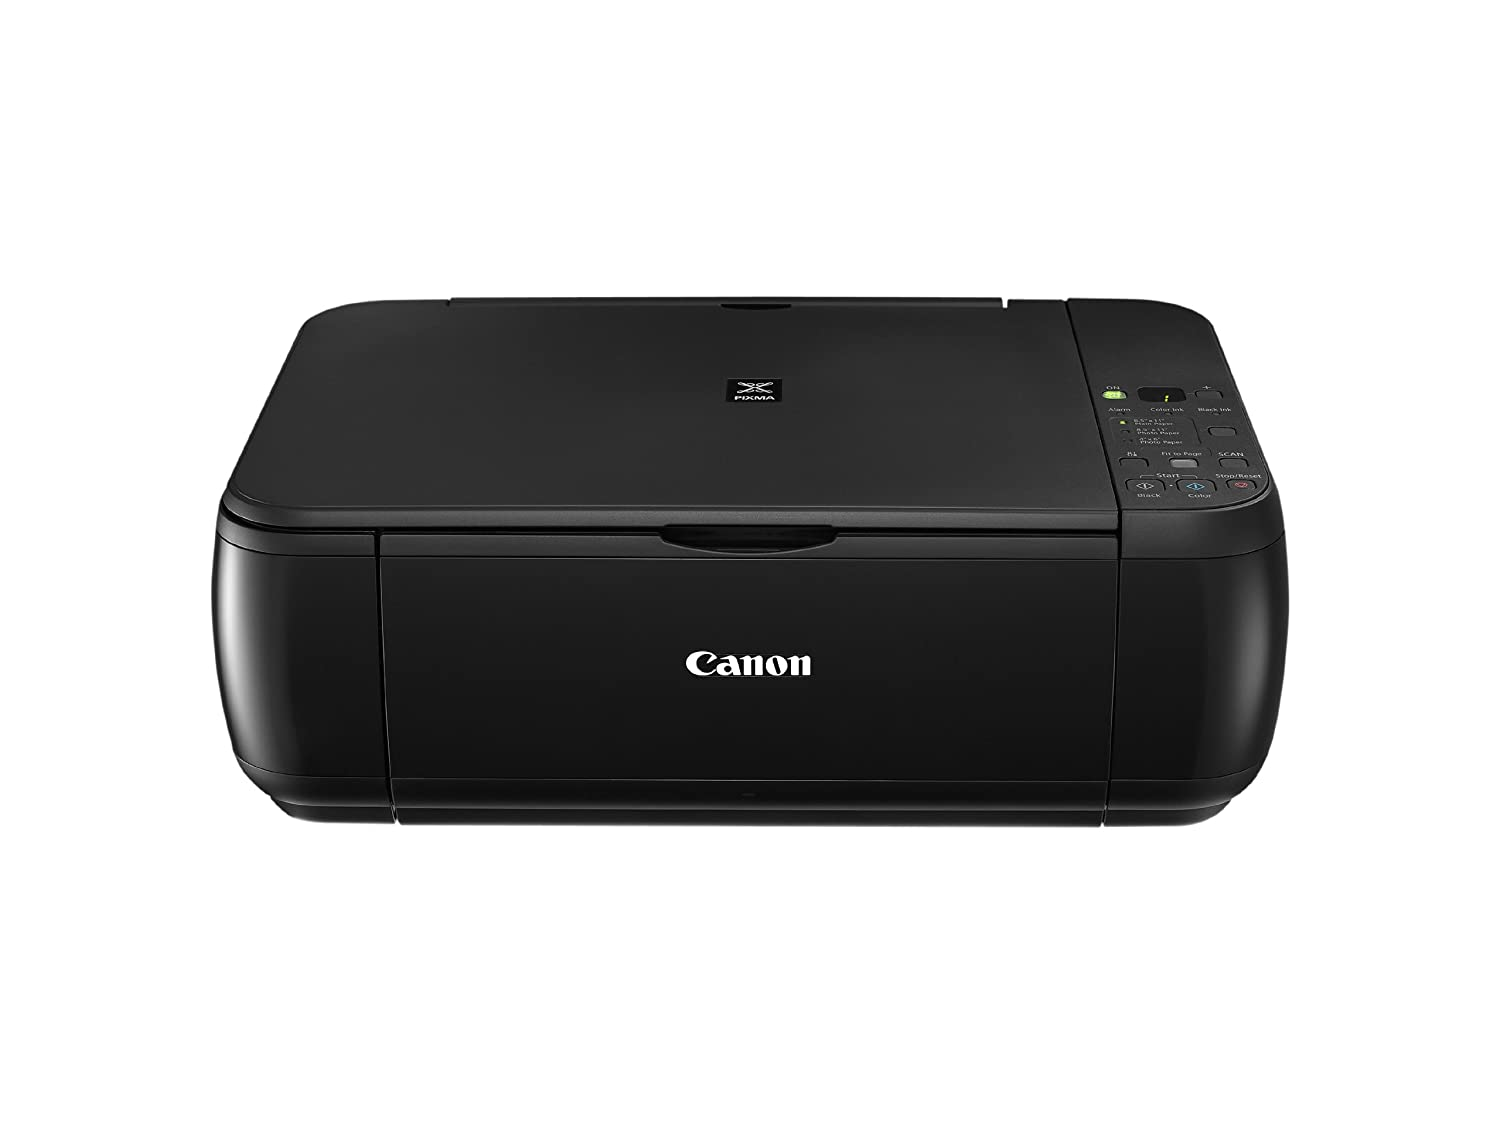 cd installation imprimante canon pixma mp280